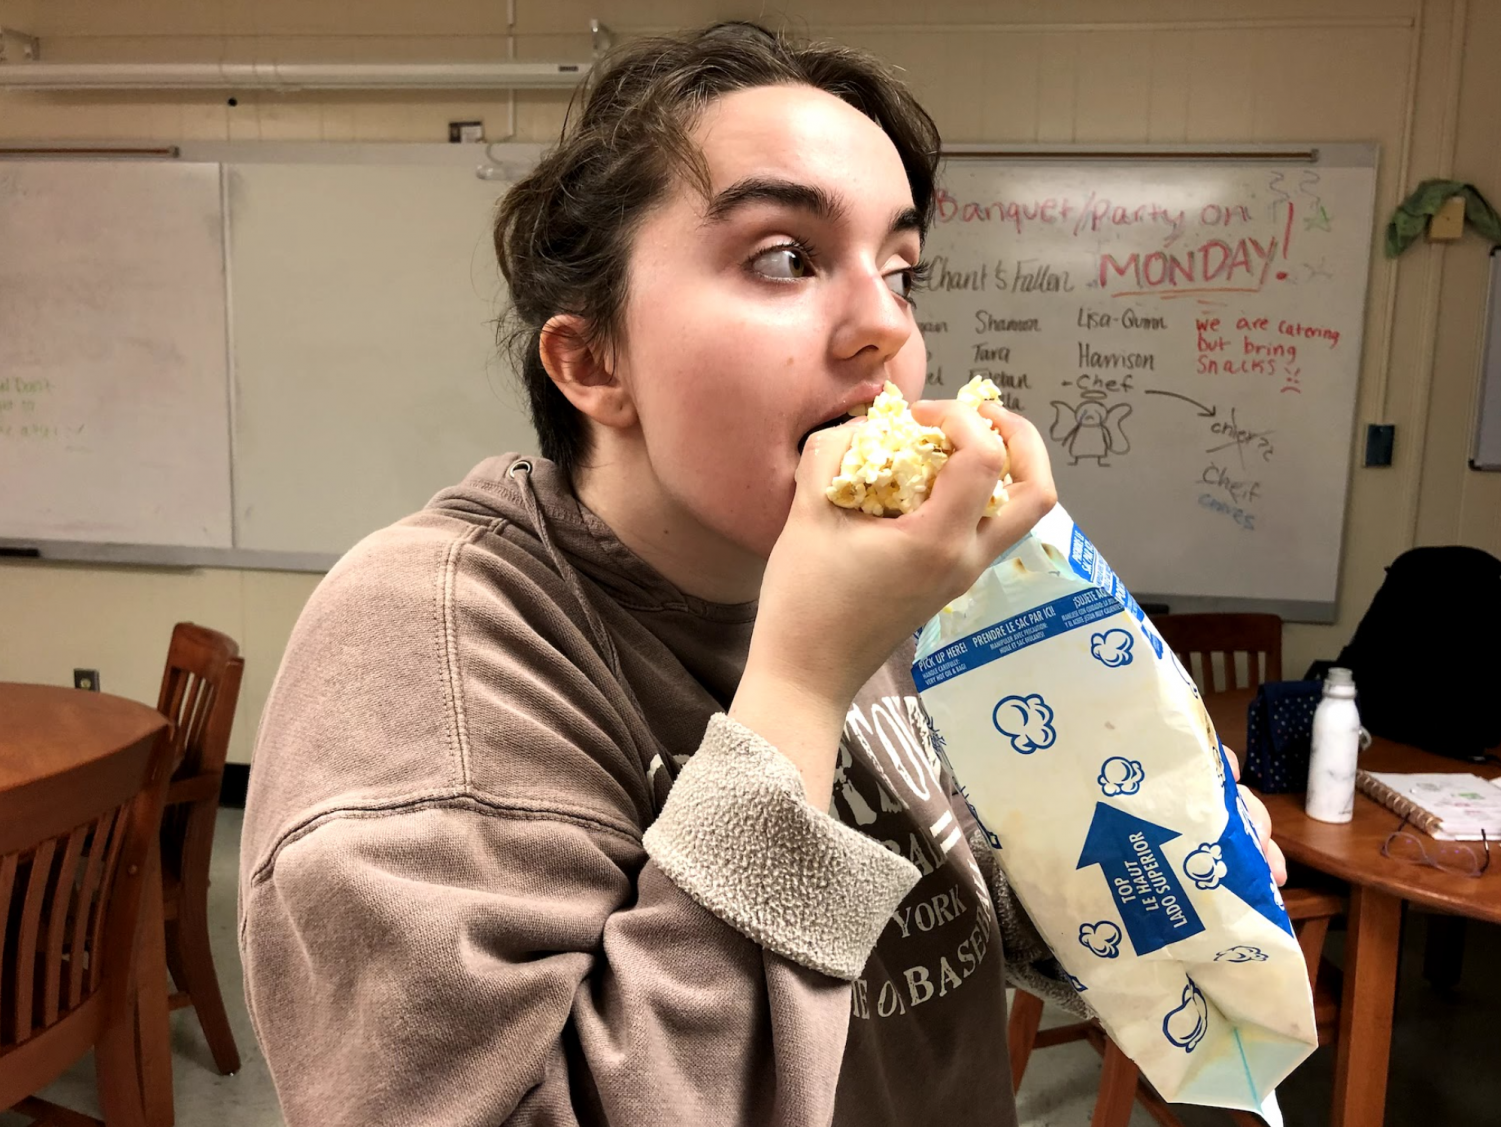 This movie-goer excitedly shoves popcorn in her mouth in anticipation for the upcoming movies that will release in theaters. Kennesaw/Acworth locals can find any of the upcoming films they wish to see at NCG, AMC at Barrett Commons, or Regal Cinemas at Town Center.